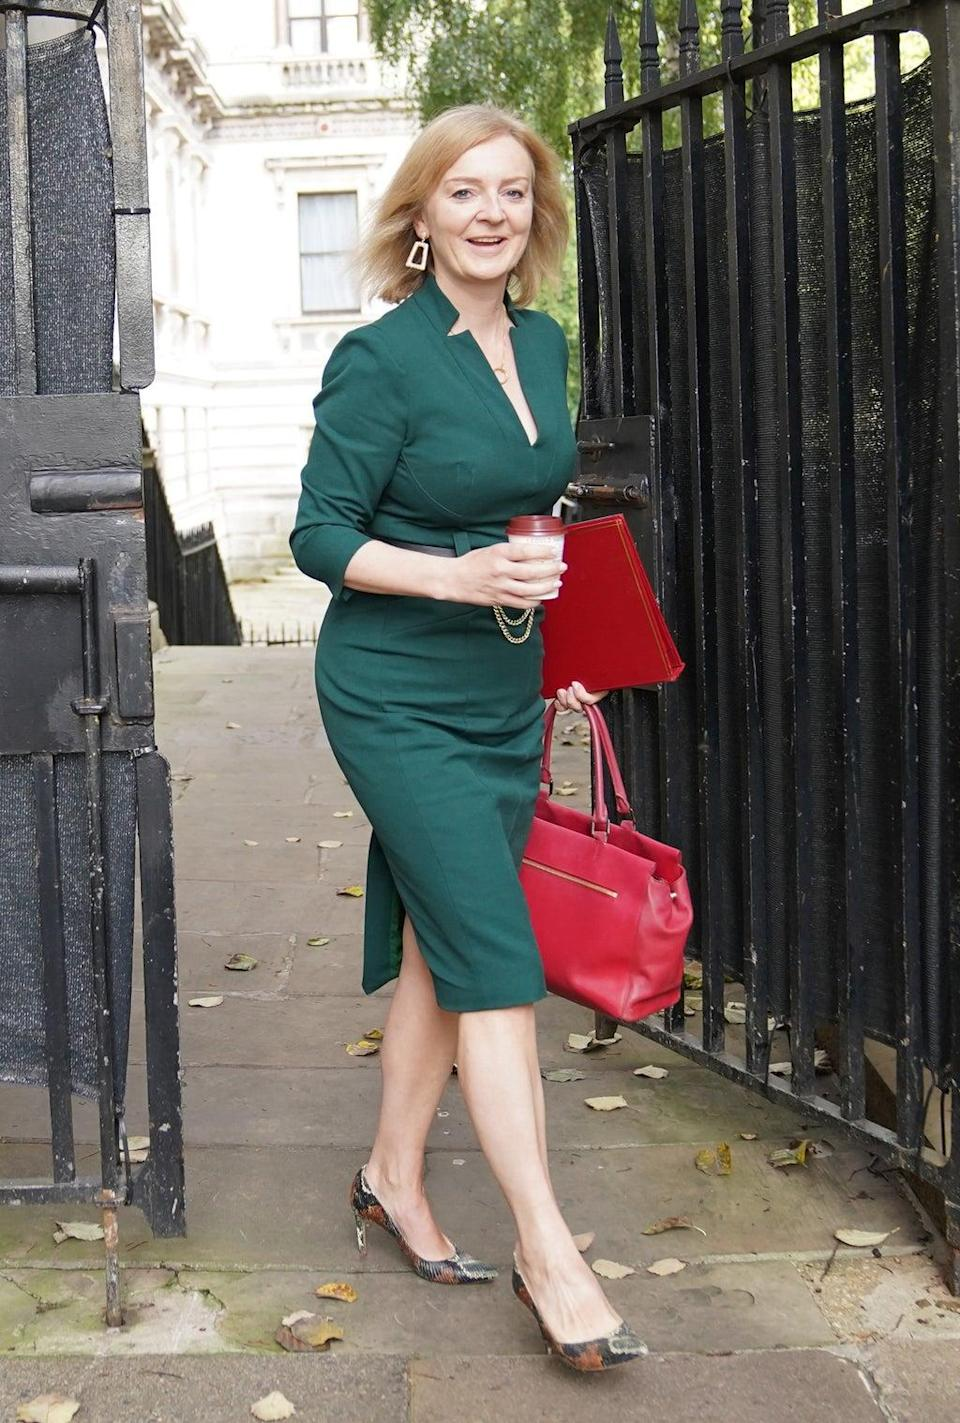 Newly appointed Foreign Secretary Liz Truss arrives in Downing Street for the first Cabinet meeting after the reshuffle (Stefan Rousseau/PA) (PA Wire)